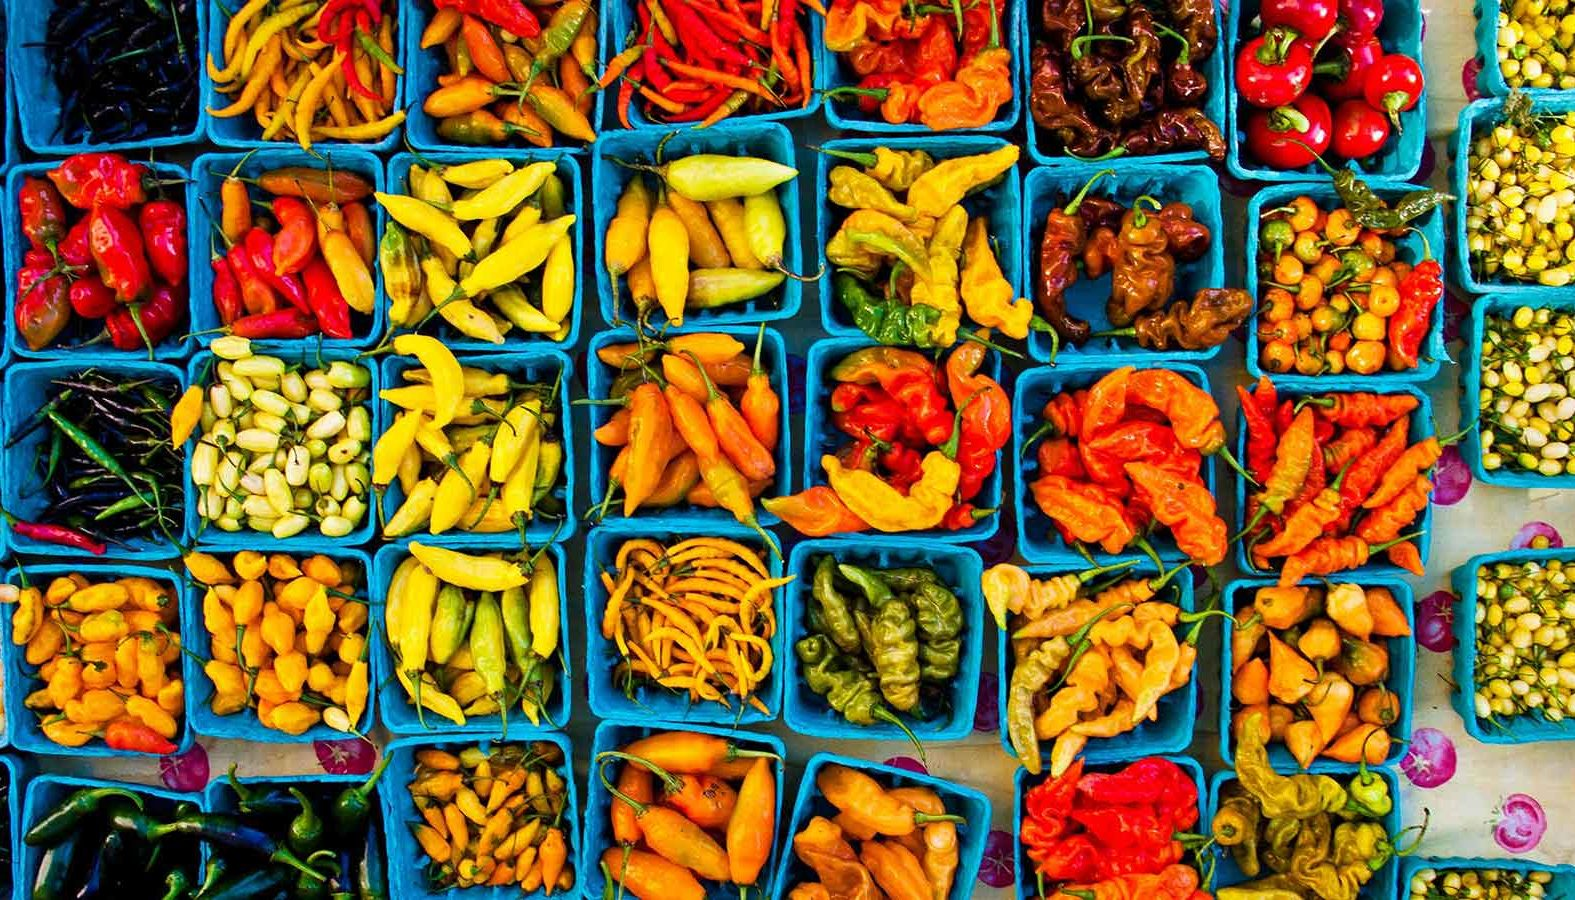 An overview of various chili peppers